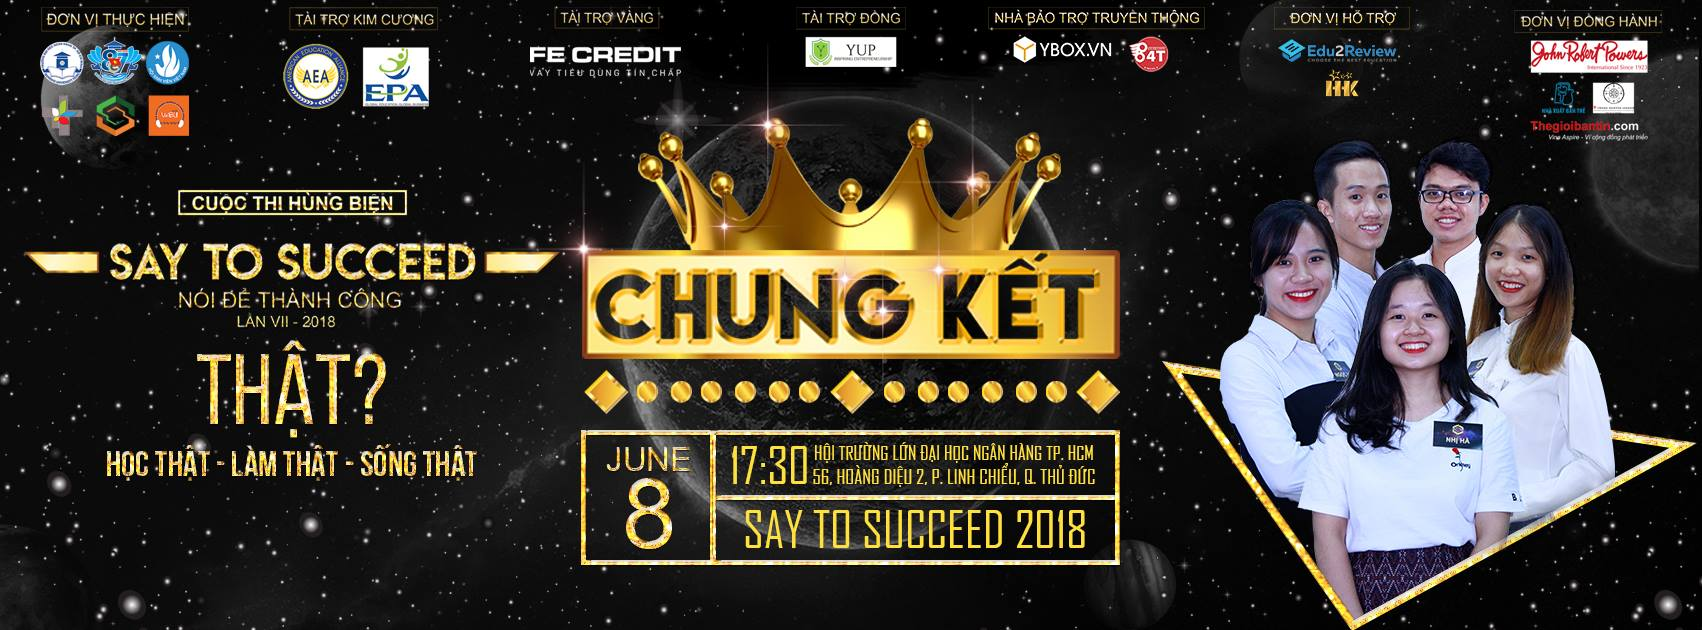 "08/06/2018 – Chung kết cuộc thi ""Say to Succeed 2018"""